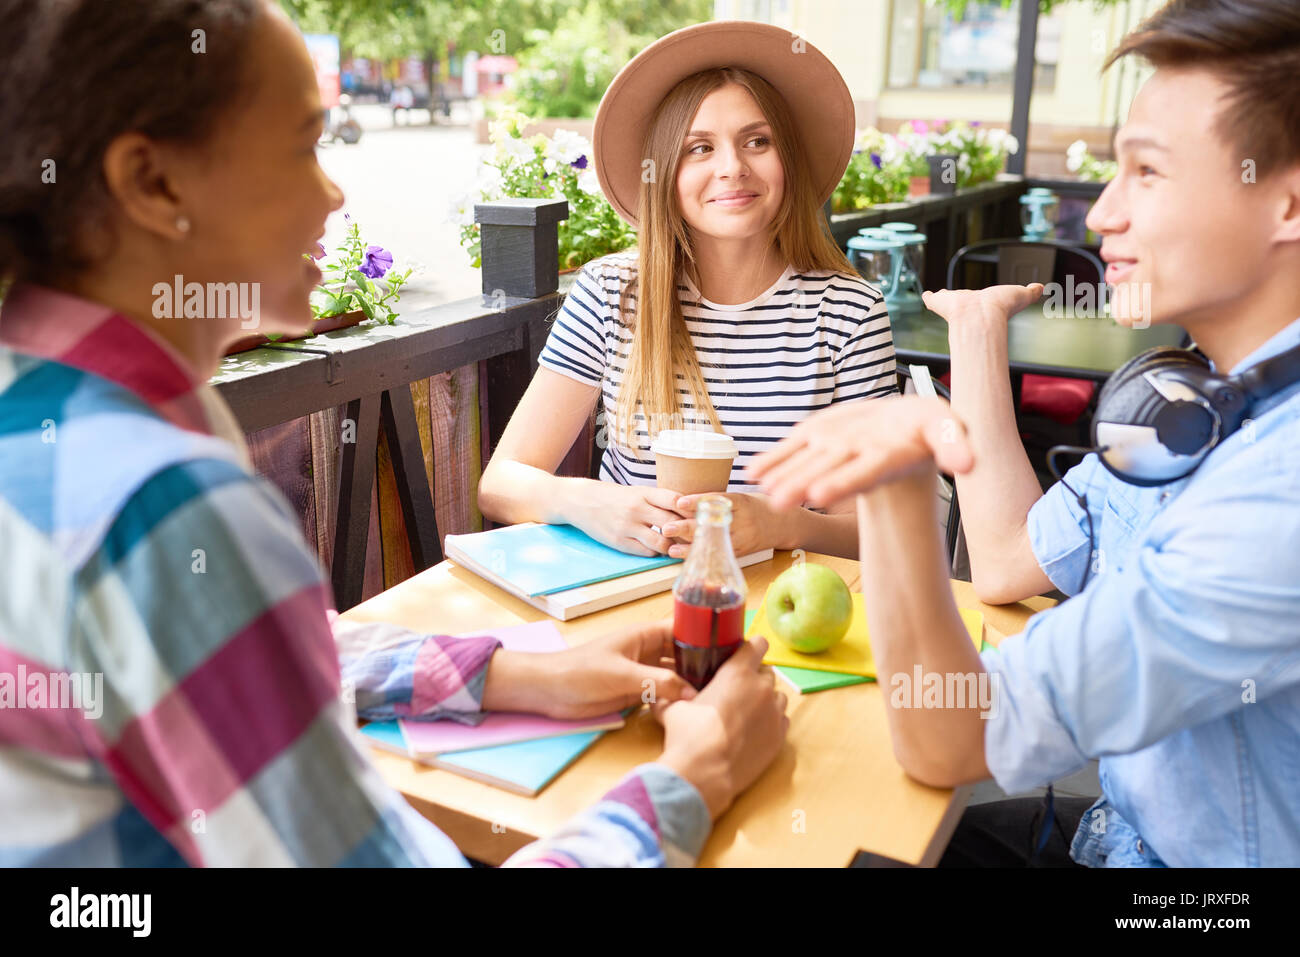 Students Enjoying Lunch in Outdoor Cafe - Stock Image